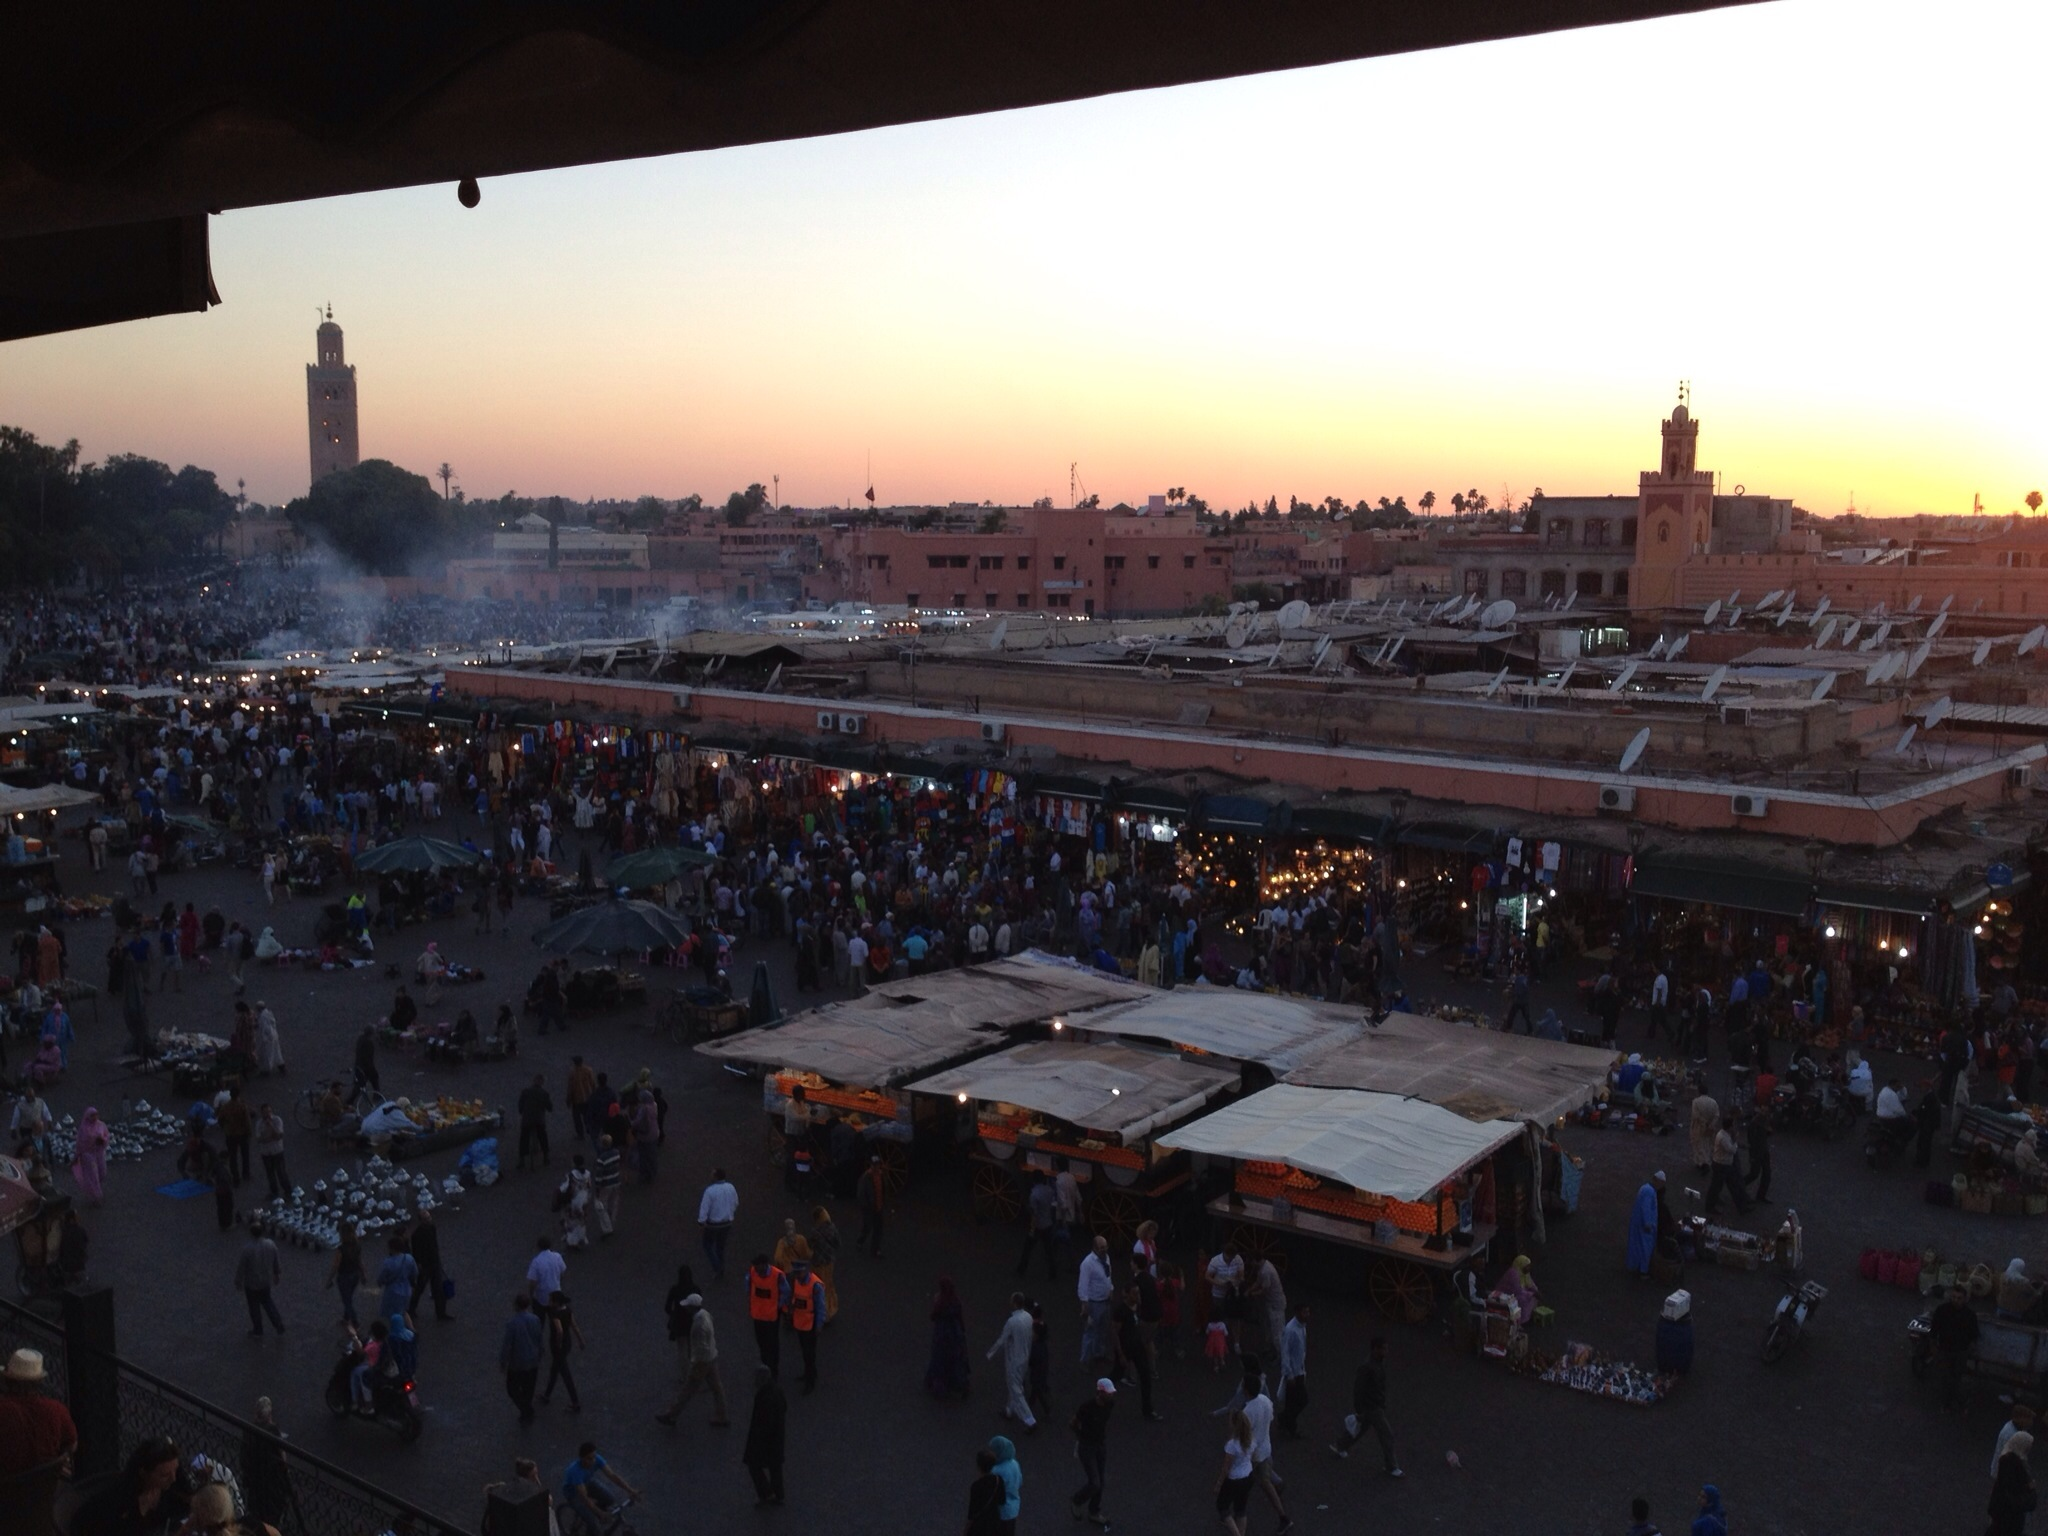 Jemaa square in Marrakech